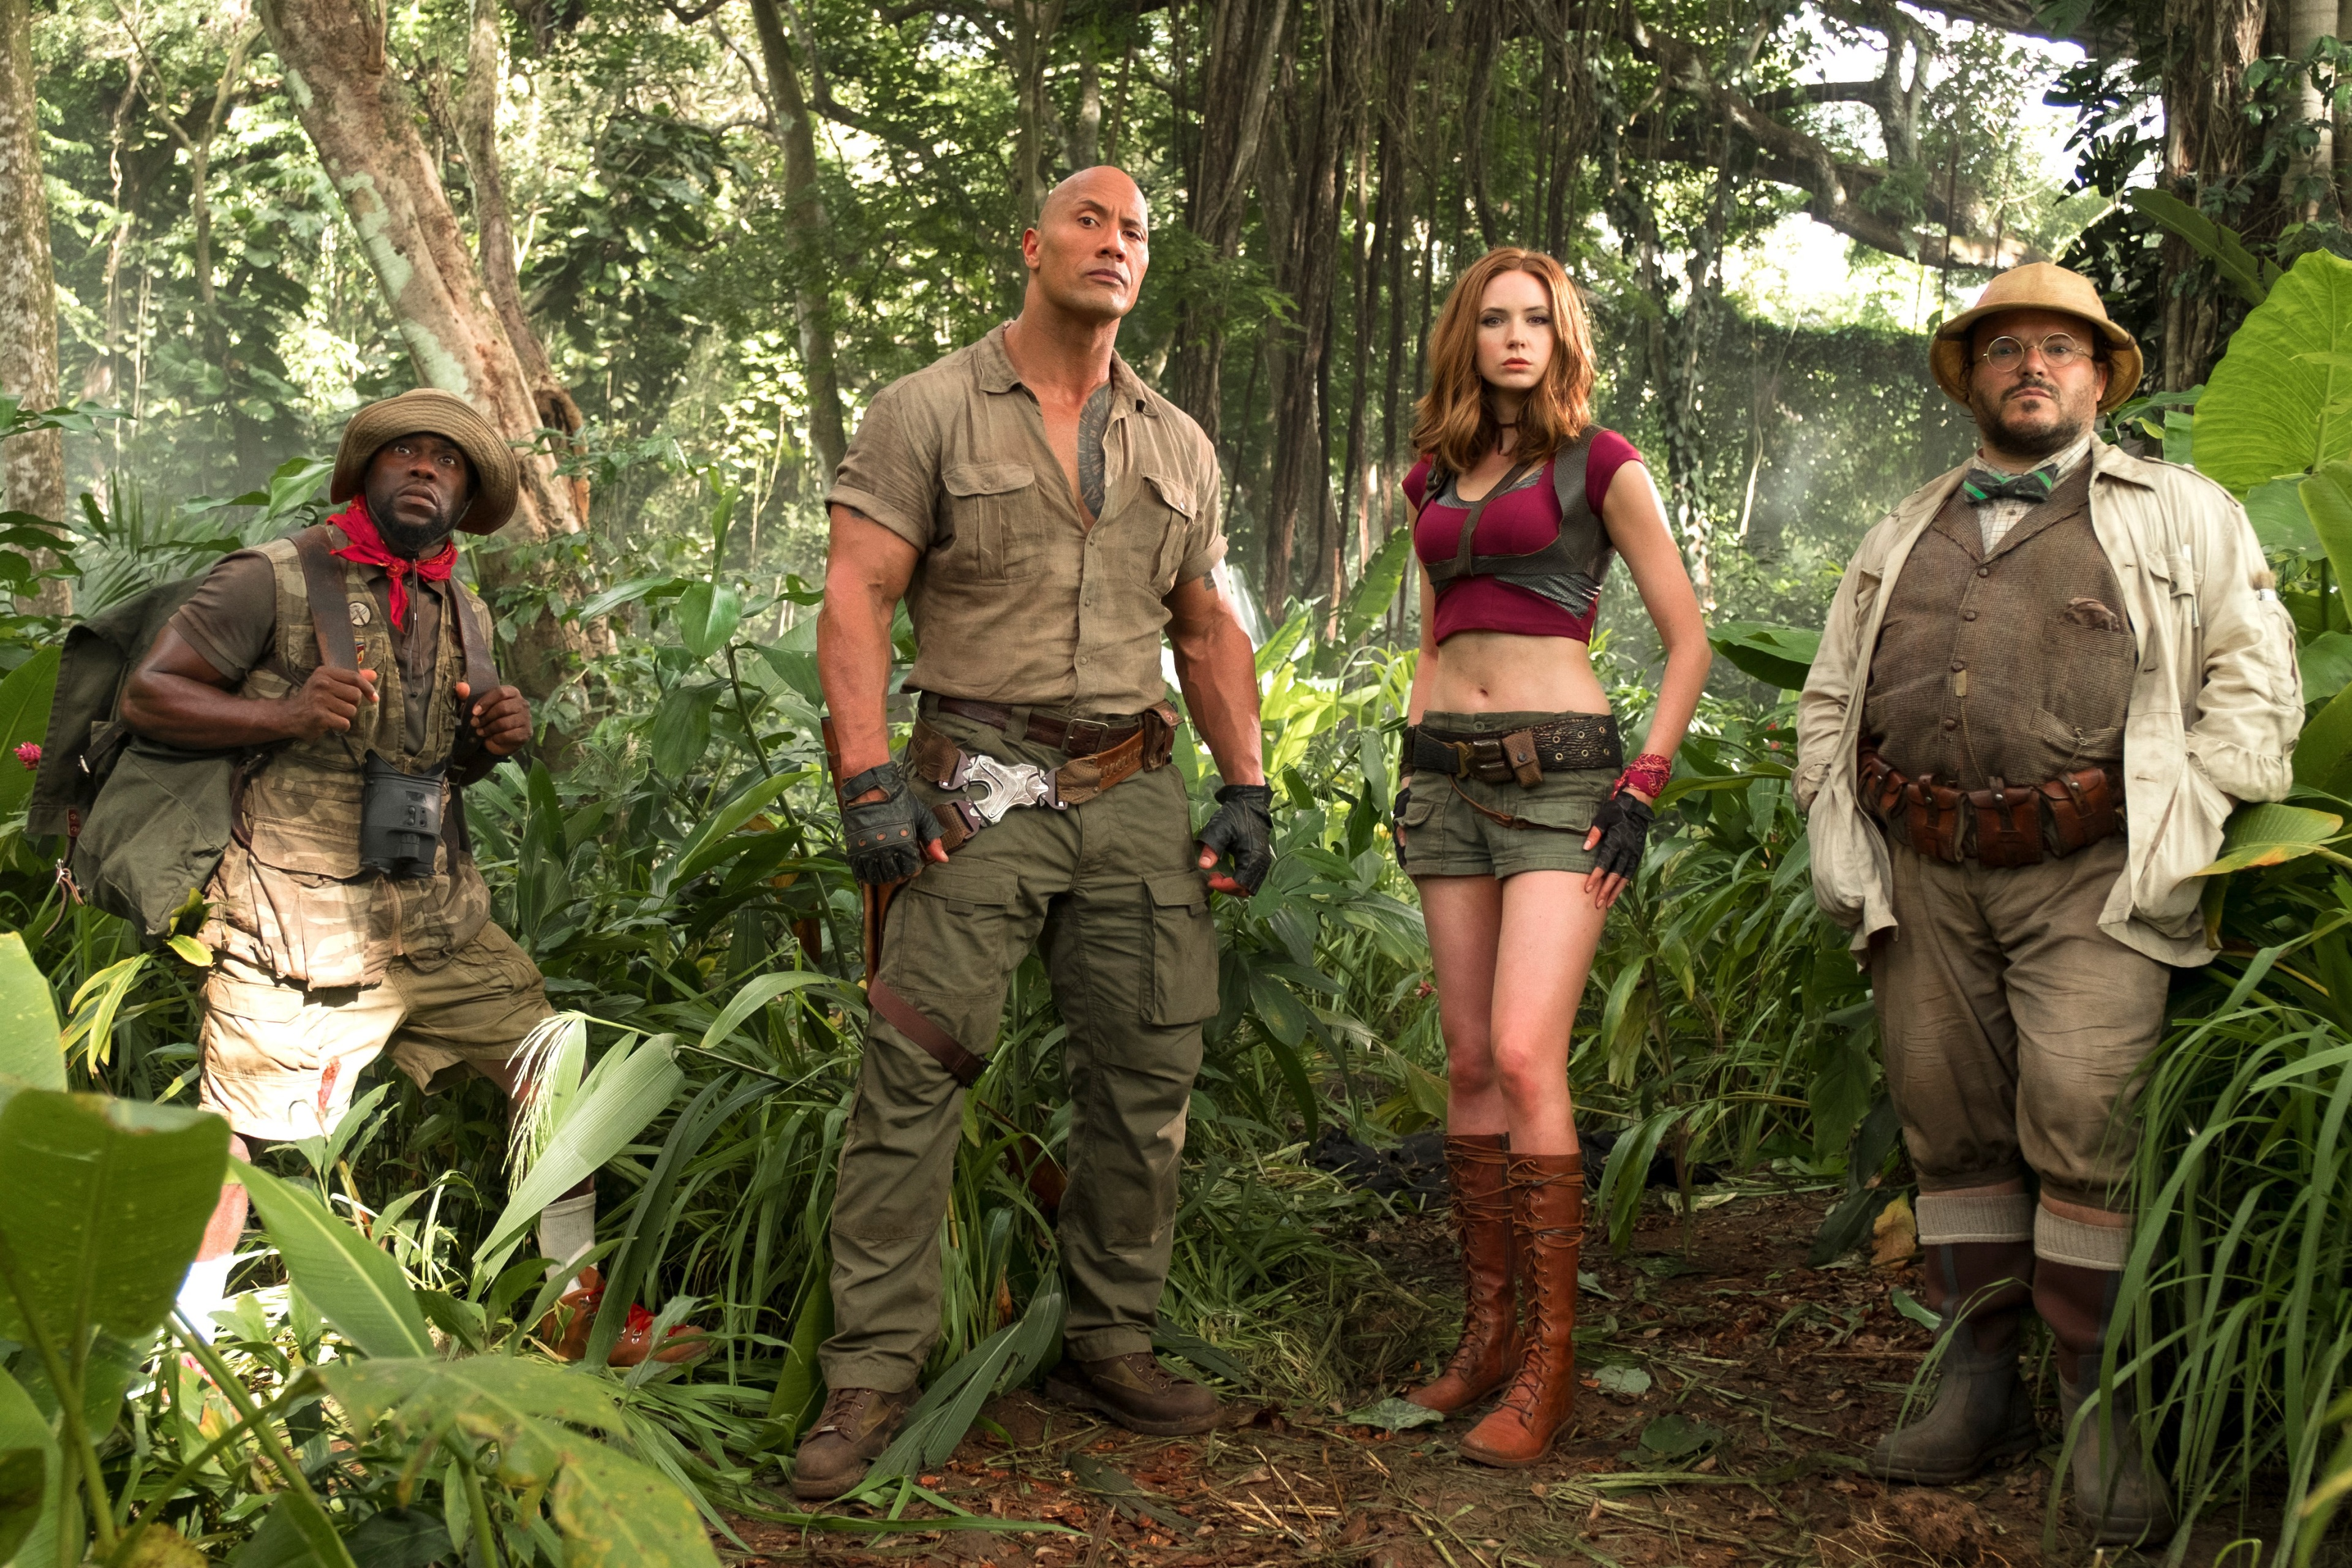 Meet the new Jumanji team